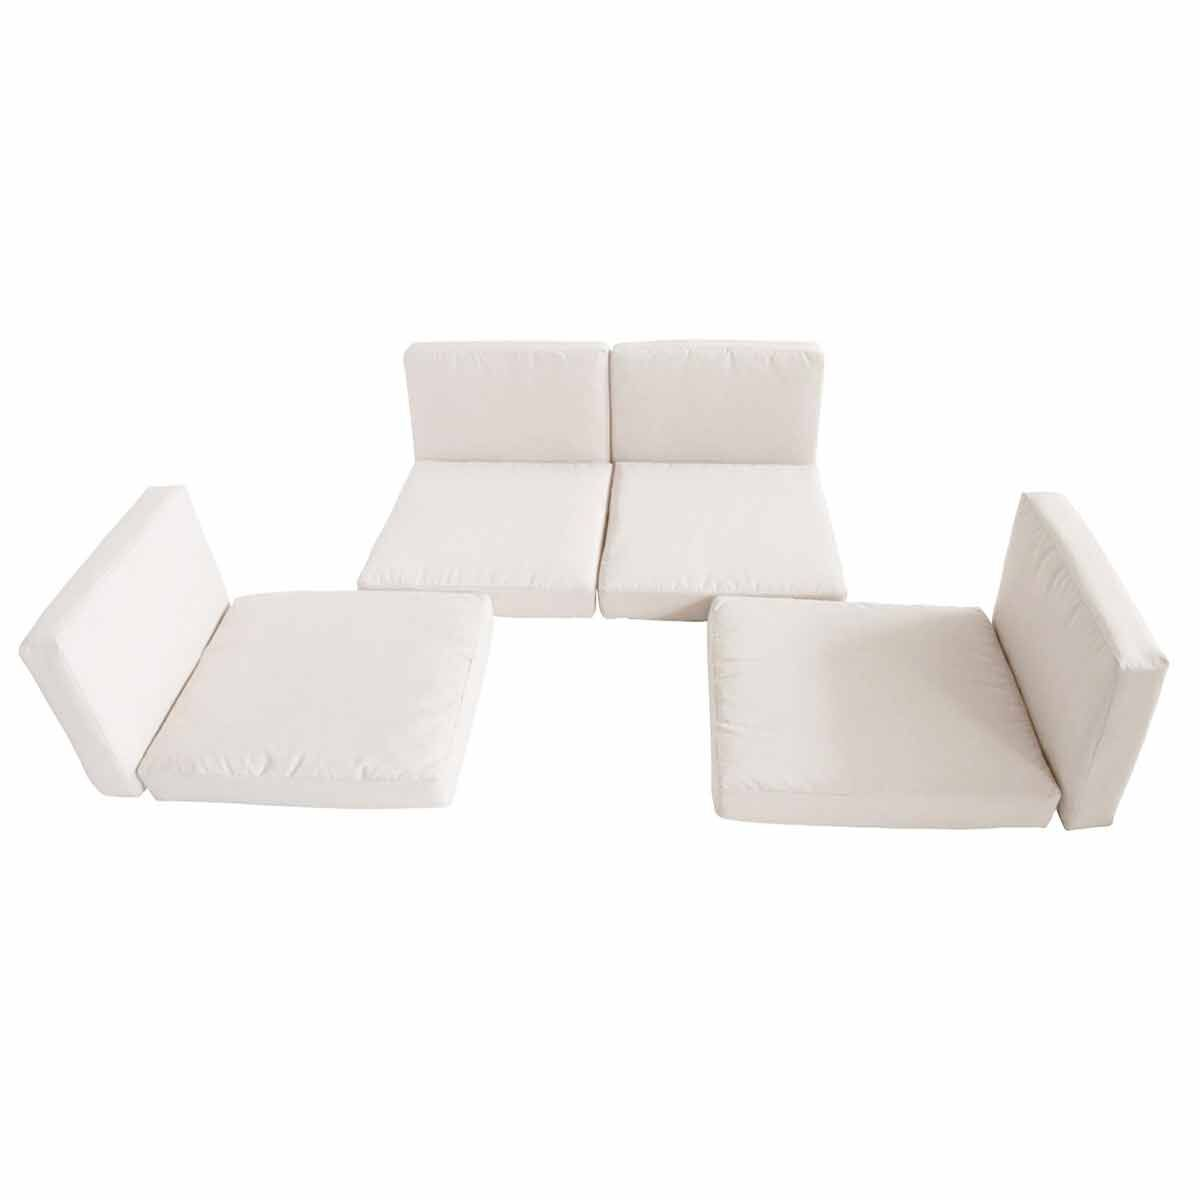 Alfresco Replacement Cushion Cover Set for Garden Furniture